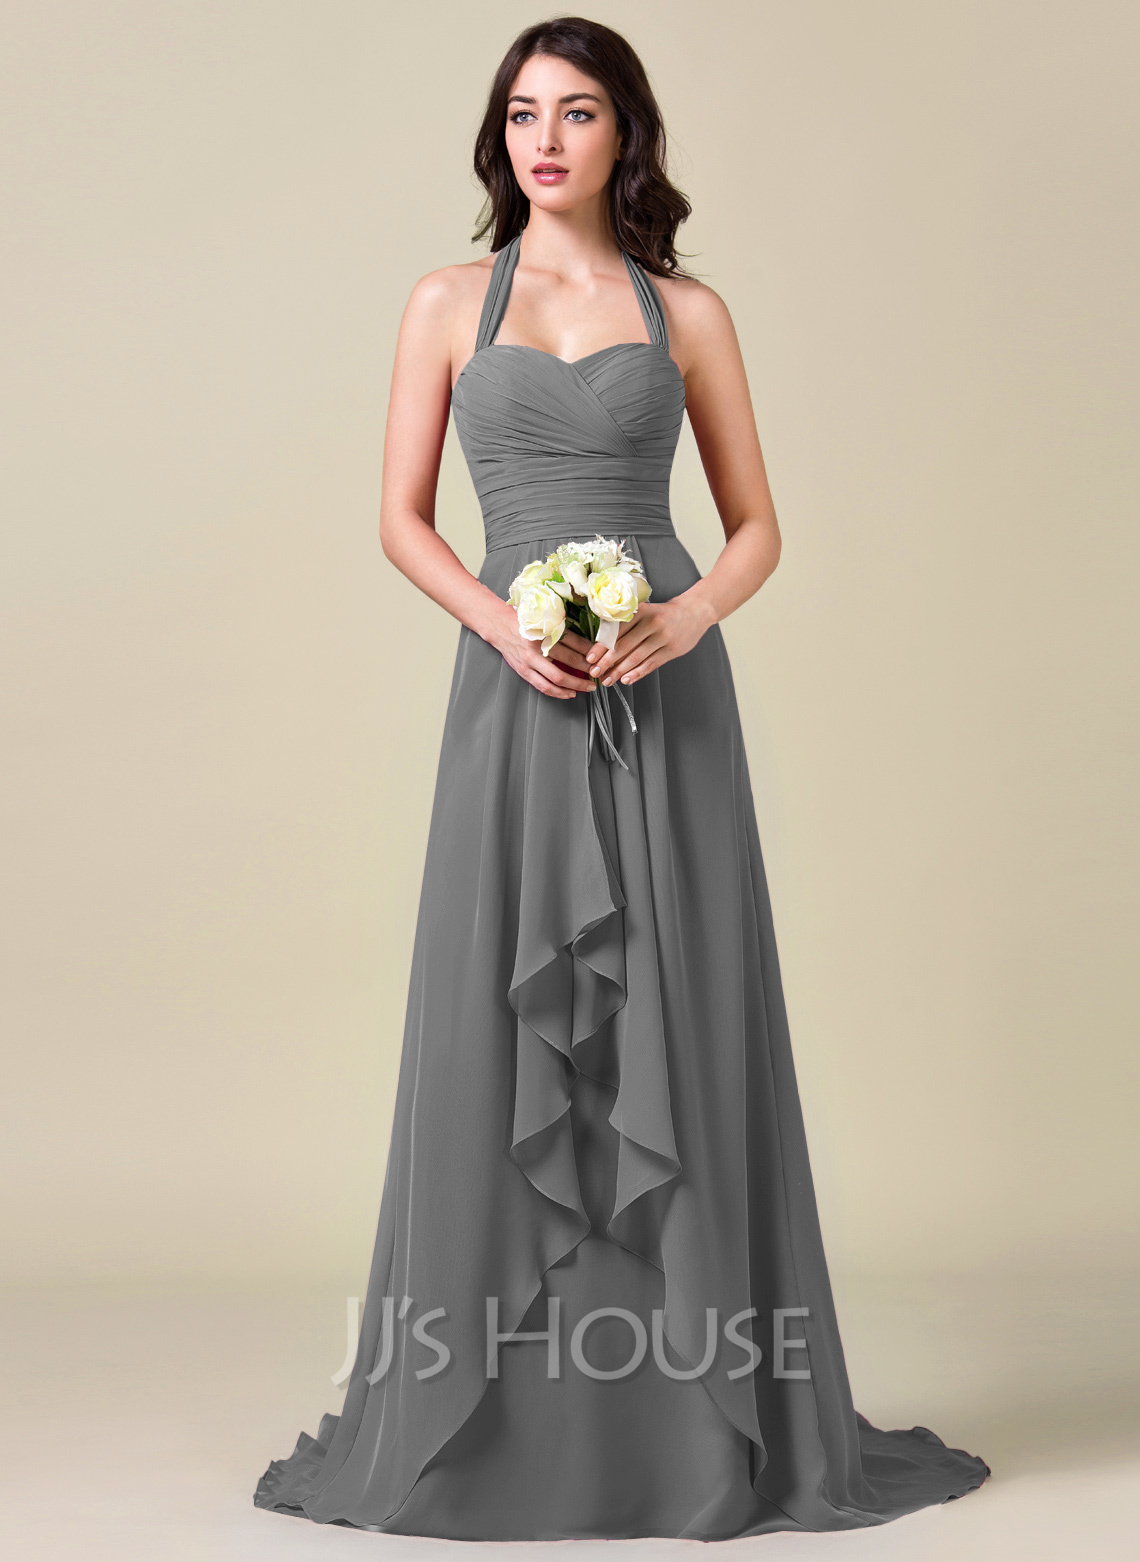 A-Line/Princess Halter Sweep Train Chiffon Bridesmaid Dress With Bow(s) Cascading Ruffles